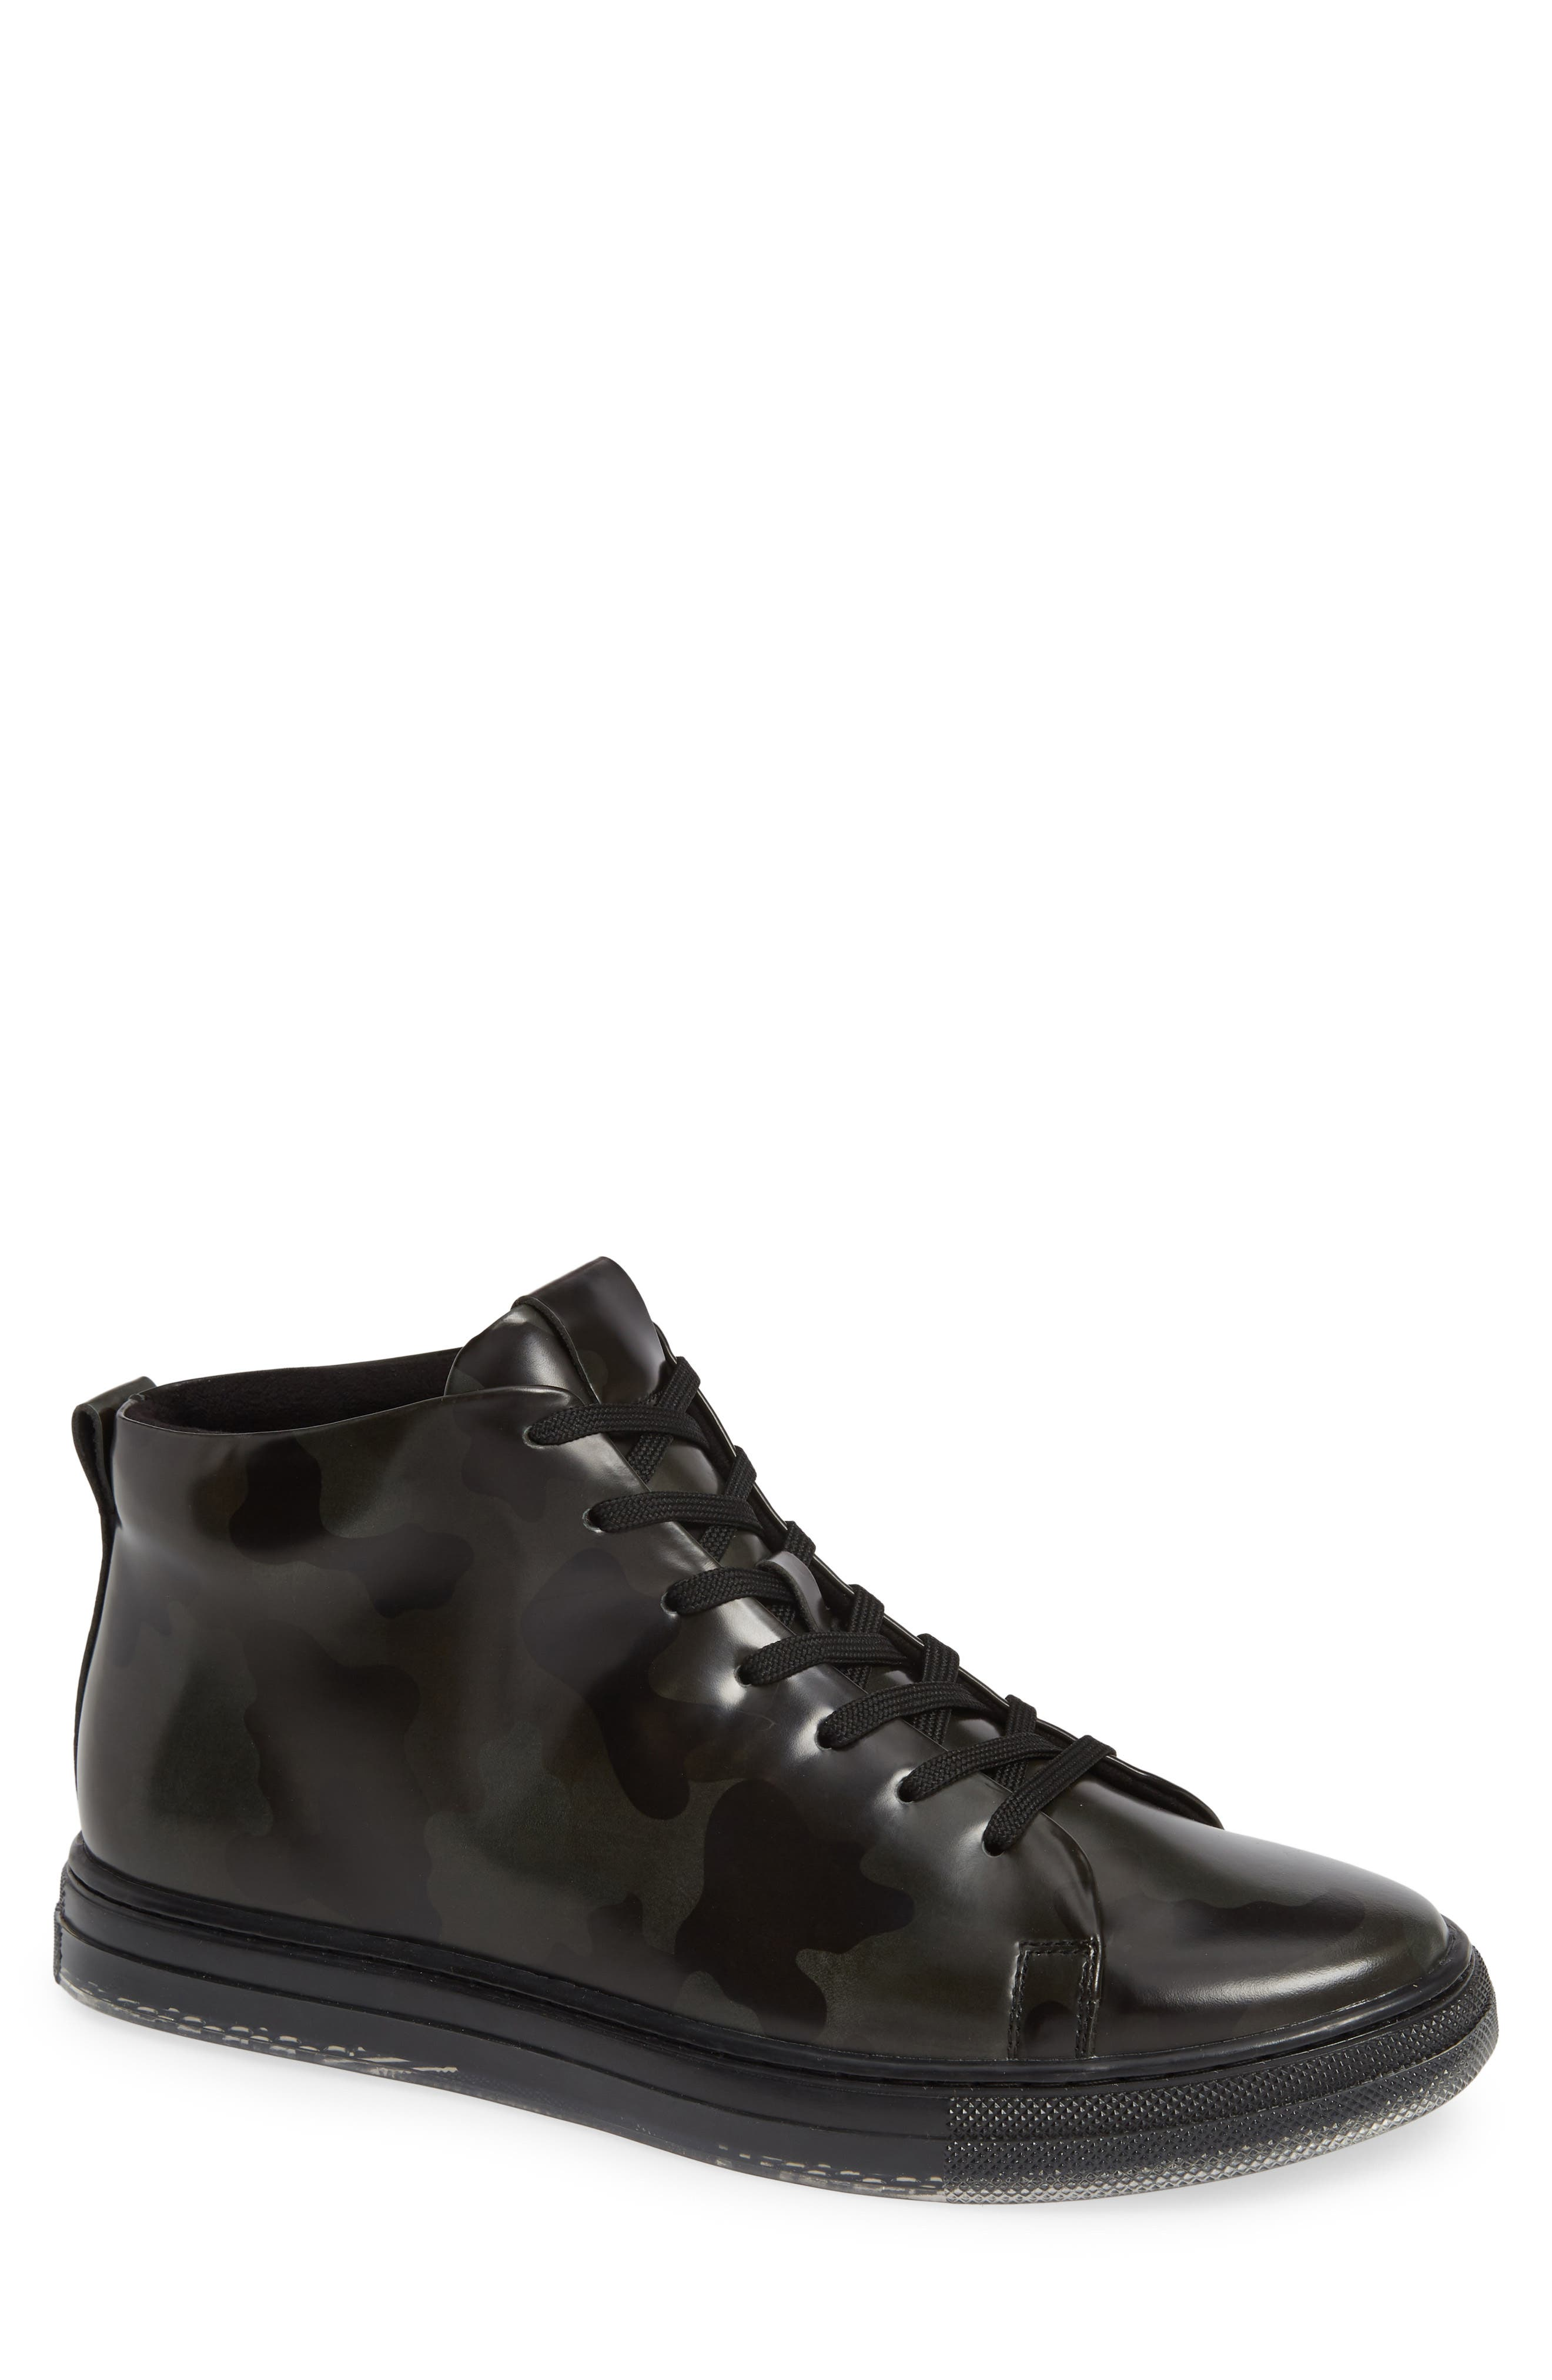 Kenneth Cole Colvin Camo High Top Sneaker- Green